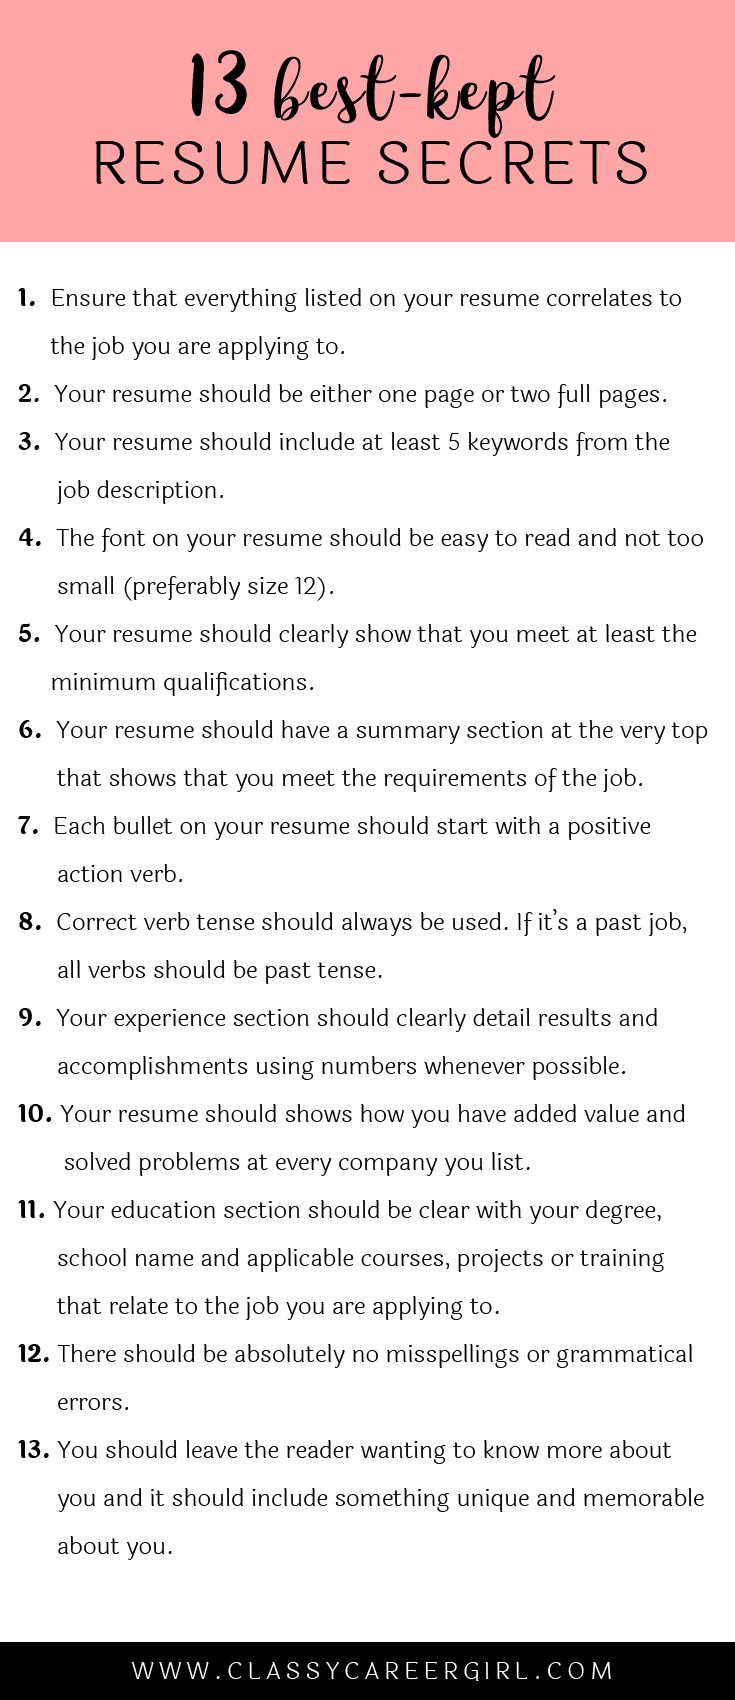 Opposenewapstandardsus  Unusual  Ideas About Resume On Pinterest  Cv Format Resume Cv And  With Foxy Some Hiring Managers Will Toss Your Resume Out If You Dont Know These  With Lovely Free Printable Resume Maker Also Social Worker Resume Sample In Addition Human Resources Generalist Resume And Sales Resume Example As Well As What To Name Your Resume Additionally Linked In Resume Builder From Pinterestcom With Opposenewapstandardsus  Foxy  Ideas About Resume On Pinterest  Cv Format Resume Cv And  With Lovely Some Hiring Managers Will Toss Your Resume Out If You Dont Know These  And Unusual Free Printable Resume Maker Also Social Worker Resume Sample In Addition Human Resources Generalist Resume From Pinterestcom